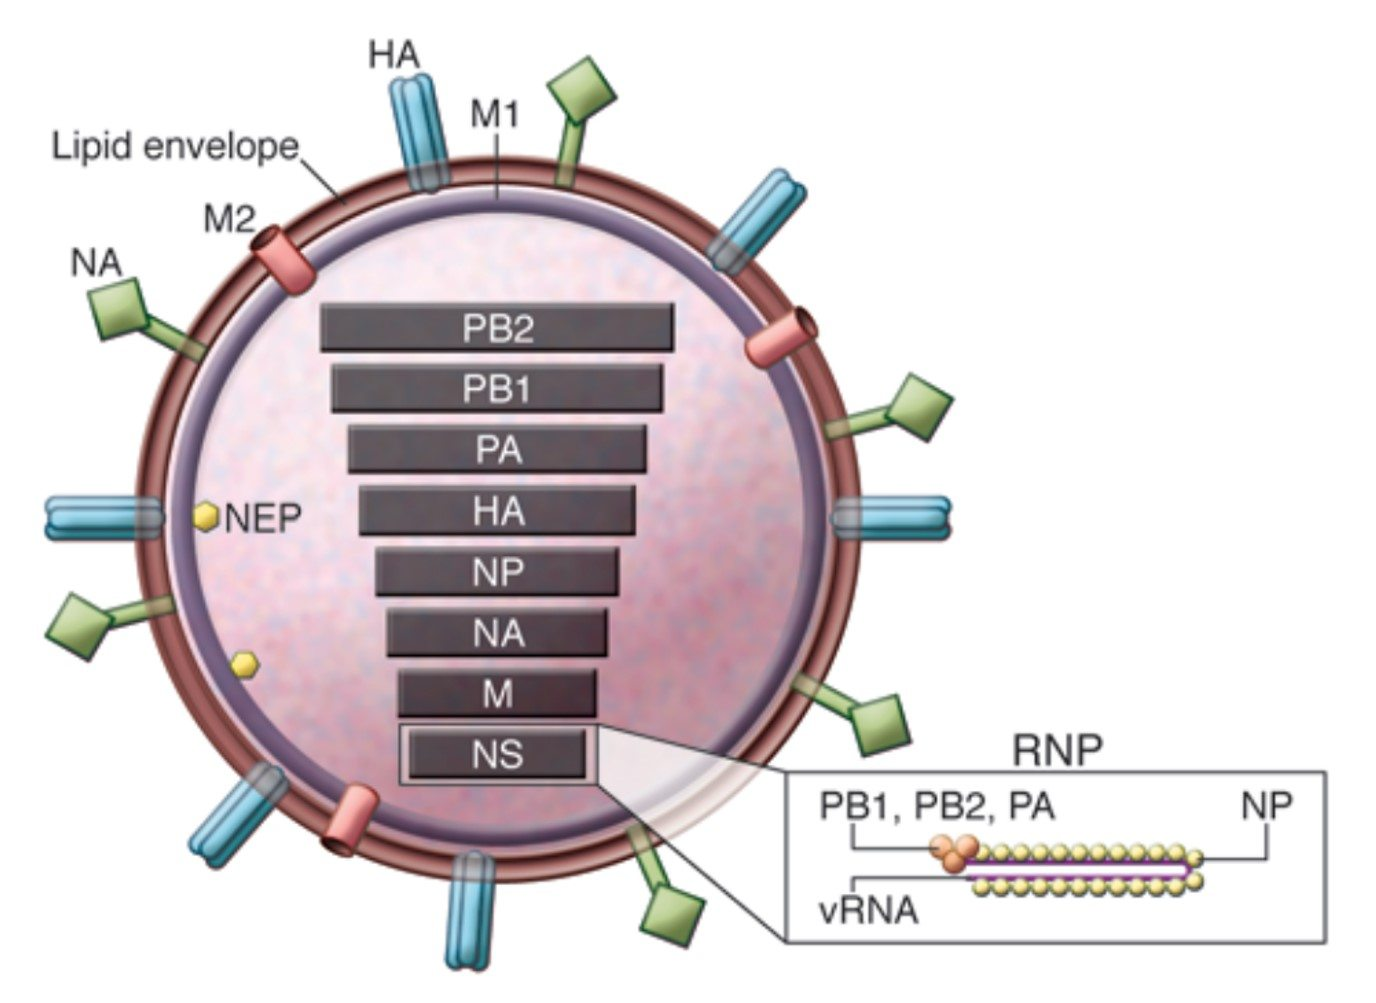 Influenza virus particle